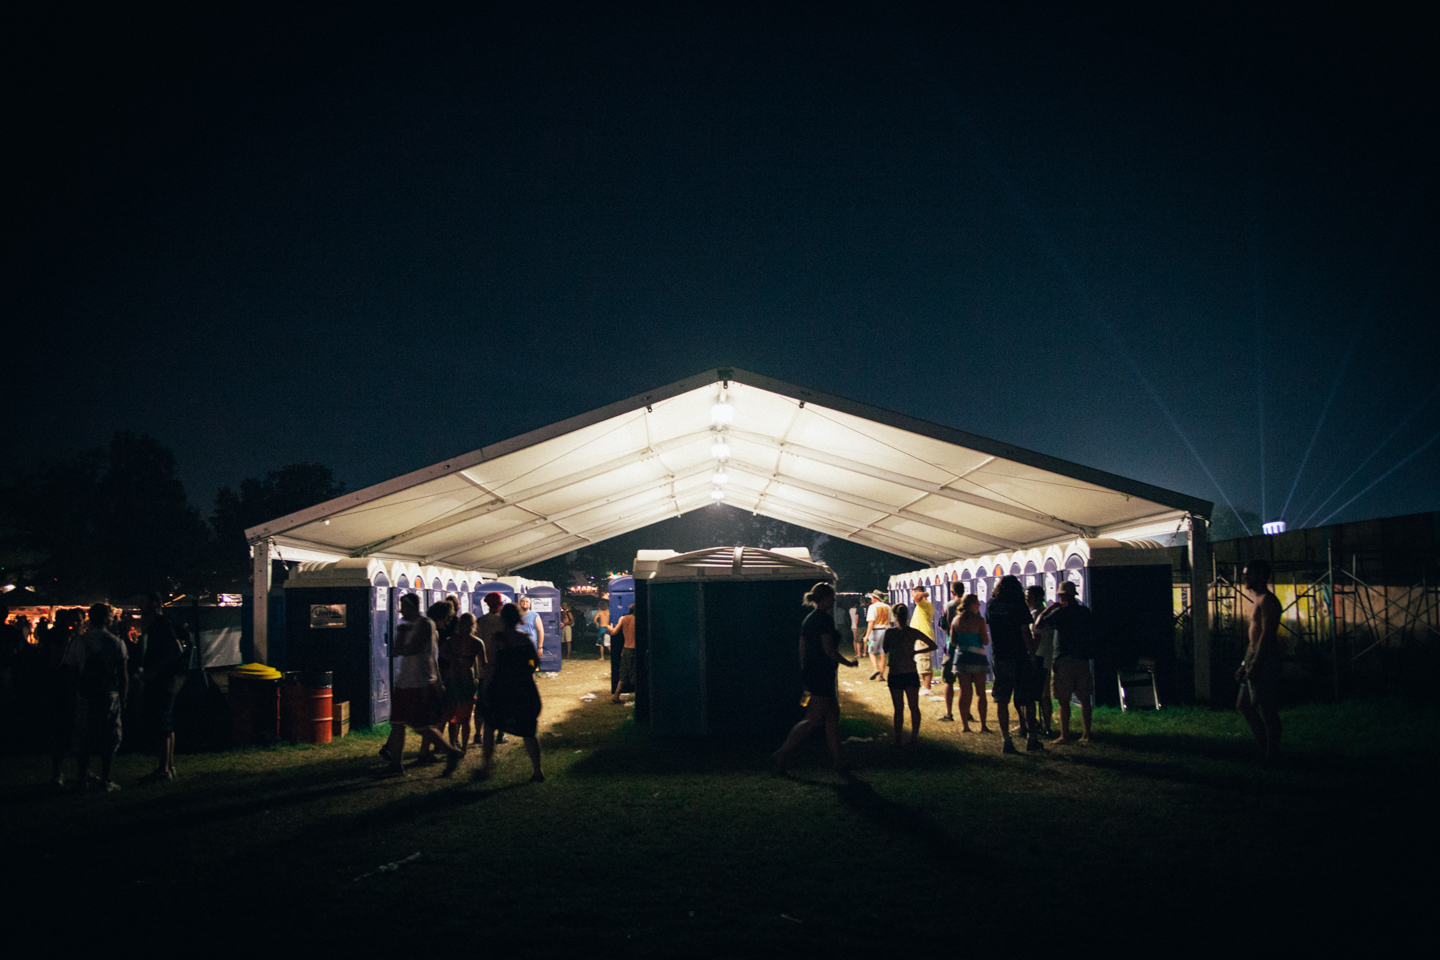 Nick-Johnson_Mr-Aesthetic_Photography_Bonnaroo-5.jpg